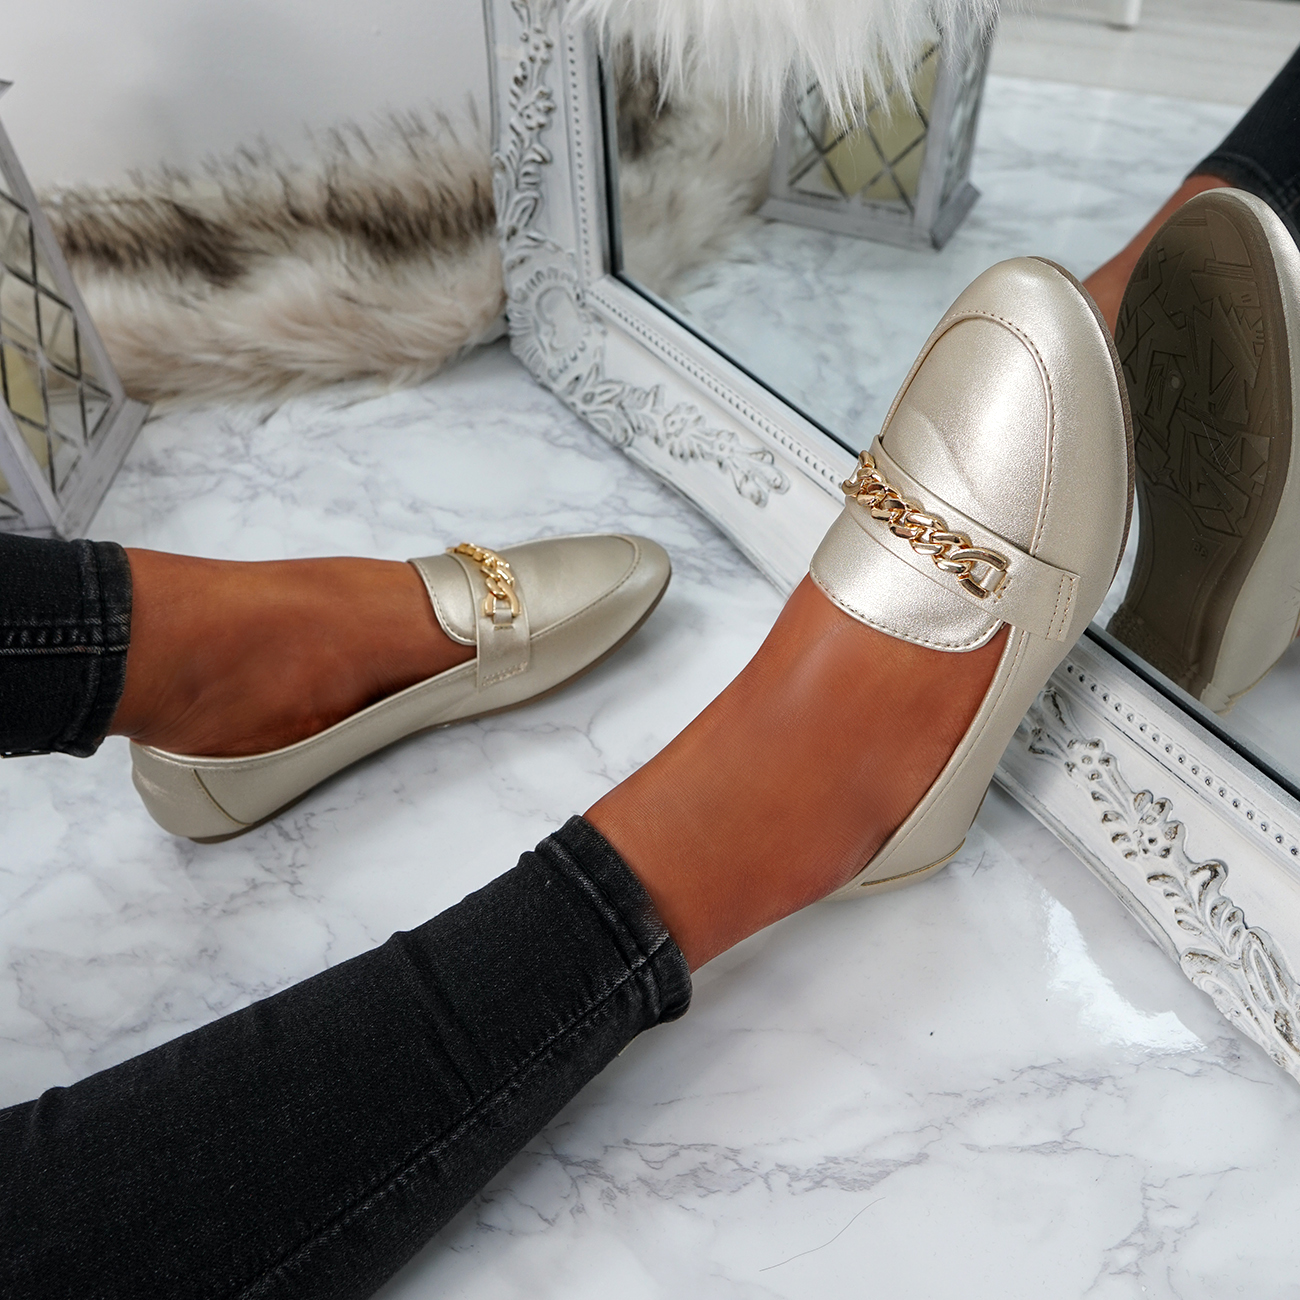 WOMENS-LADIES-CHAIN-SLIP-ON-BALLERINA-LOAFERS-BALLET-DOLLY-PUMPS-SHOES-SIZE thumbnail 30